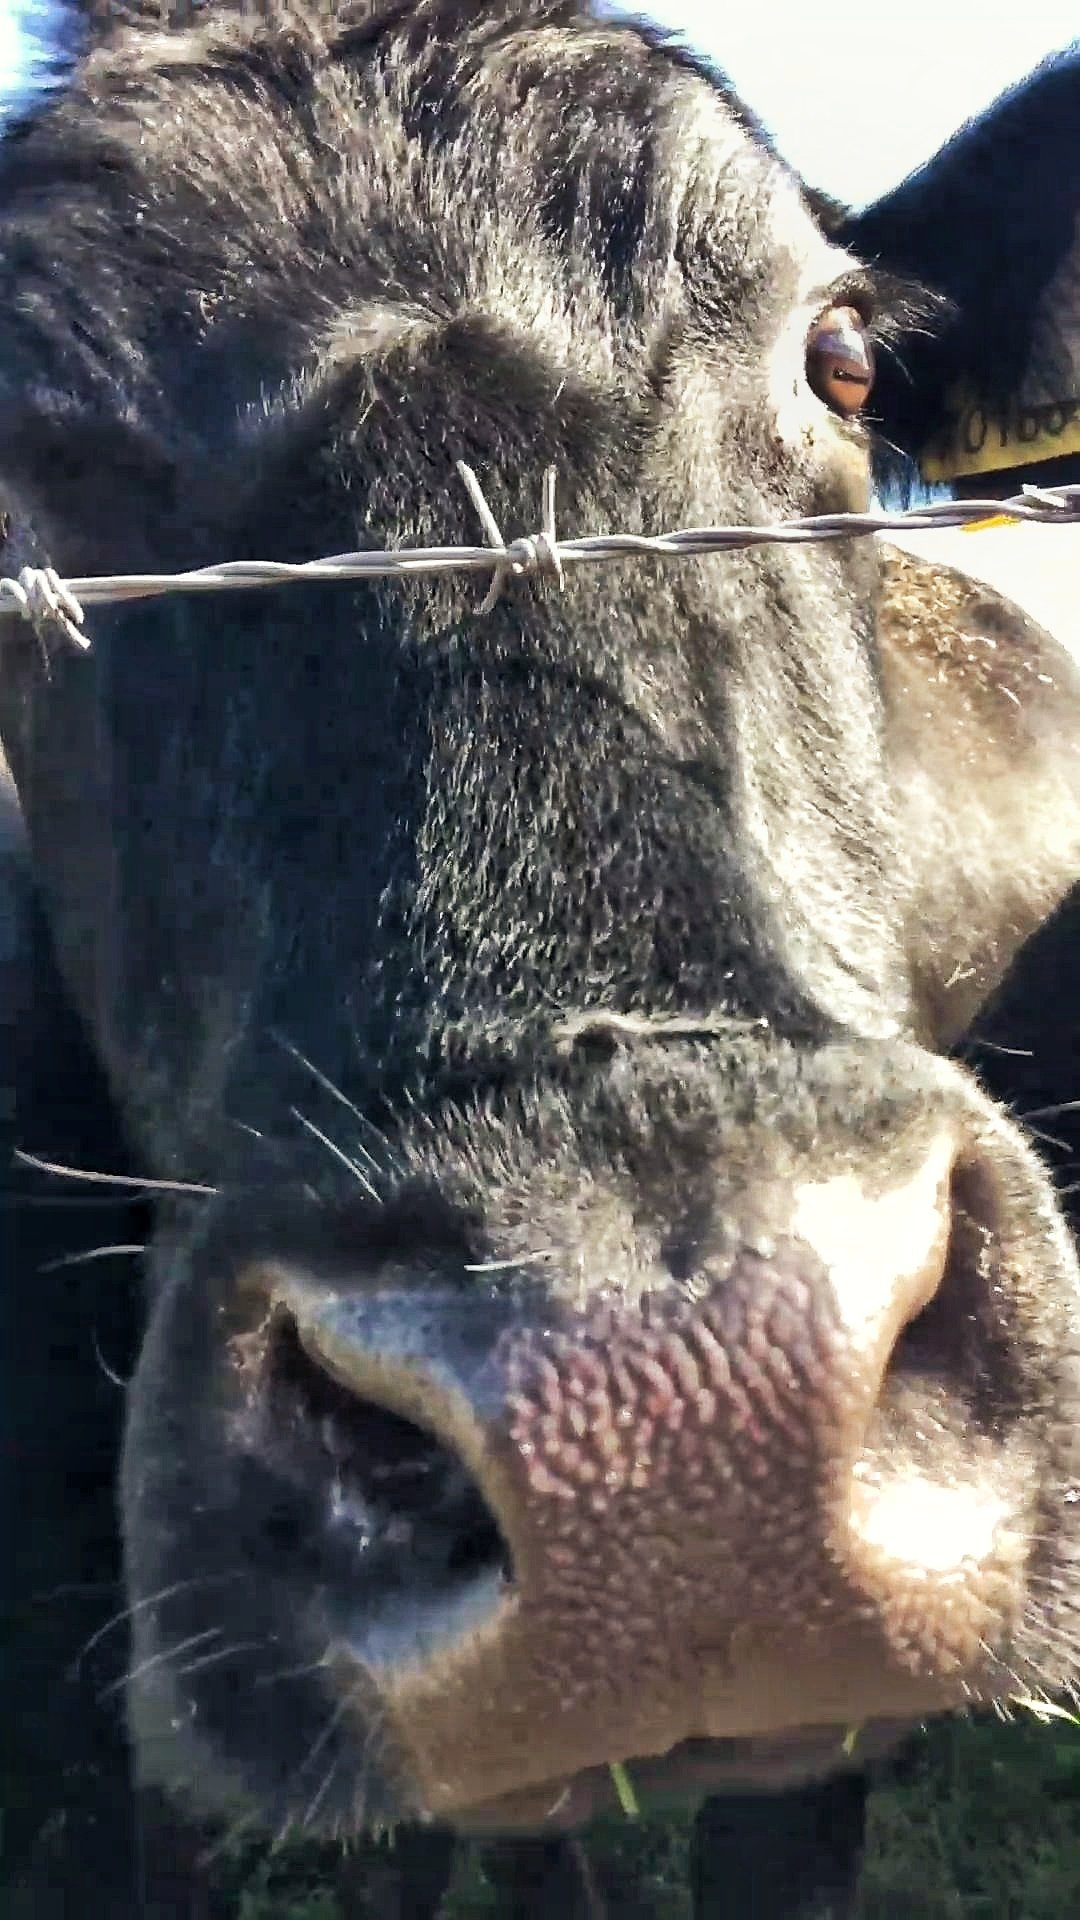 Close up of a black cow's face with her nose almost touching the camera.